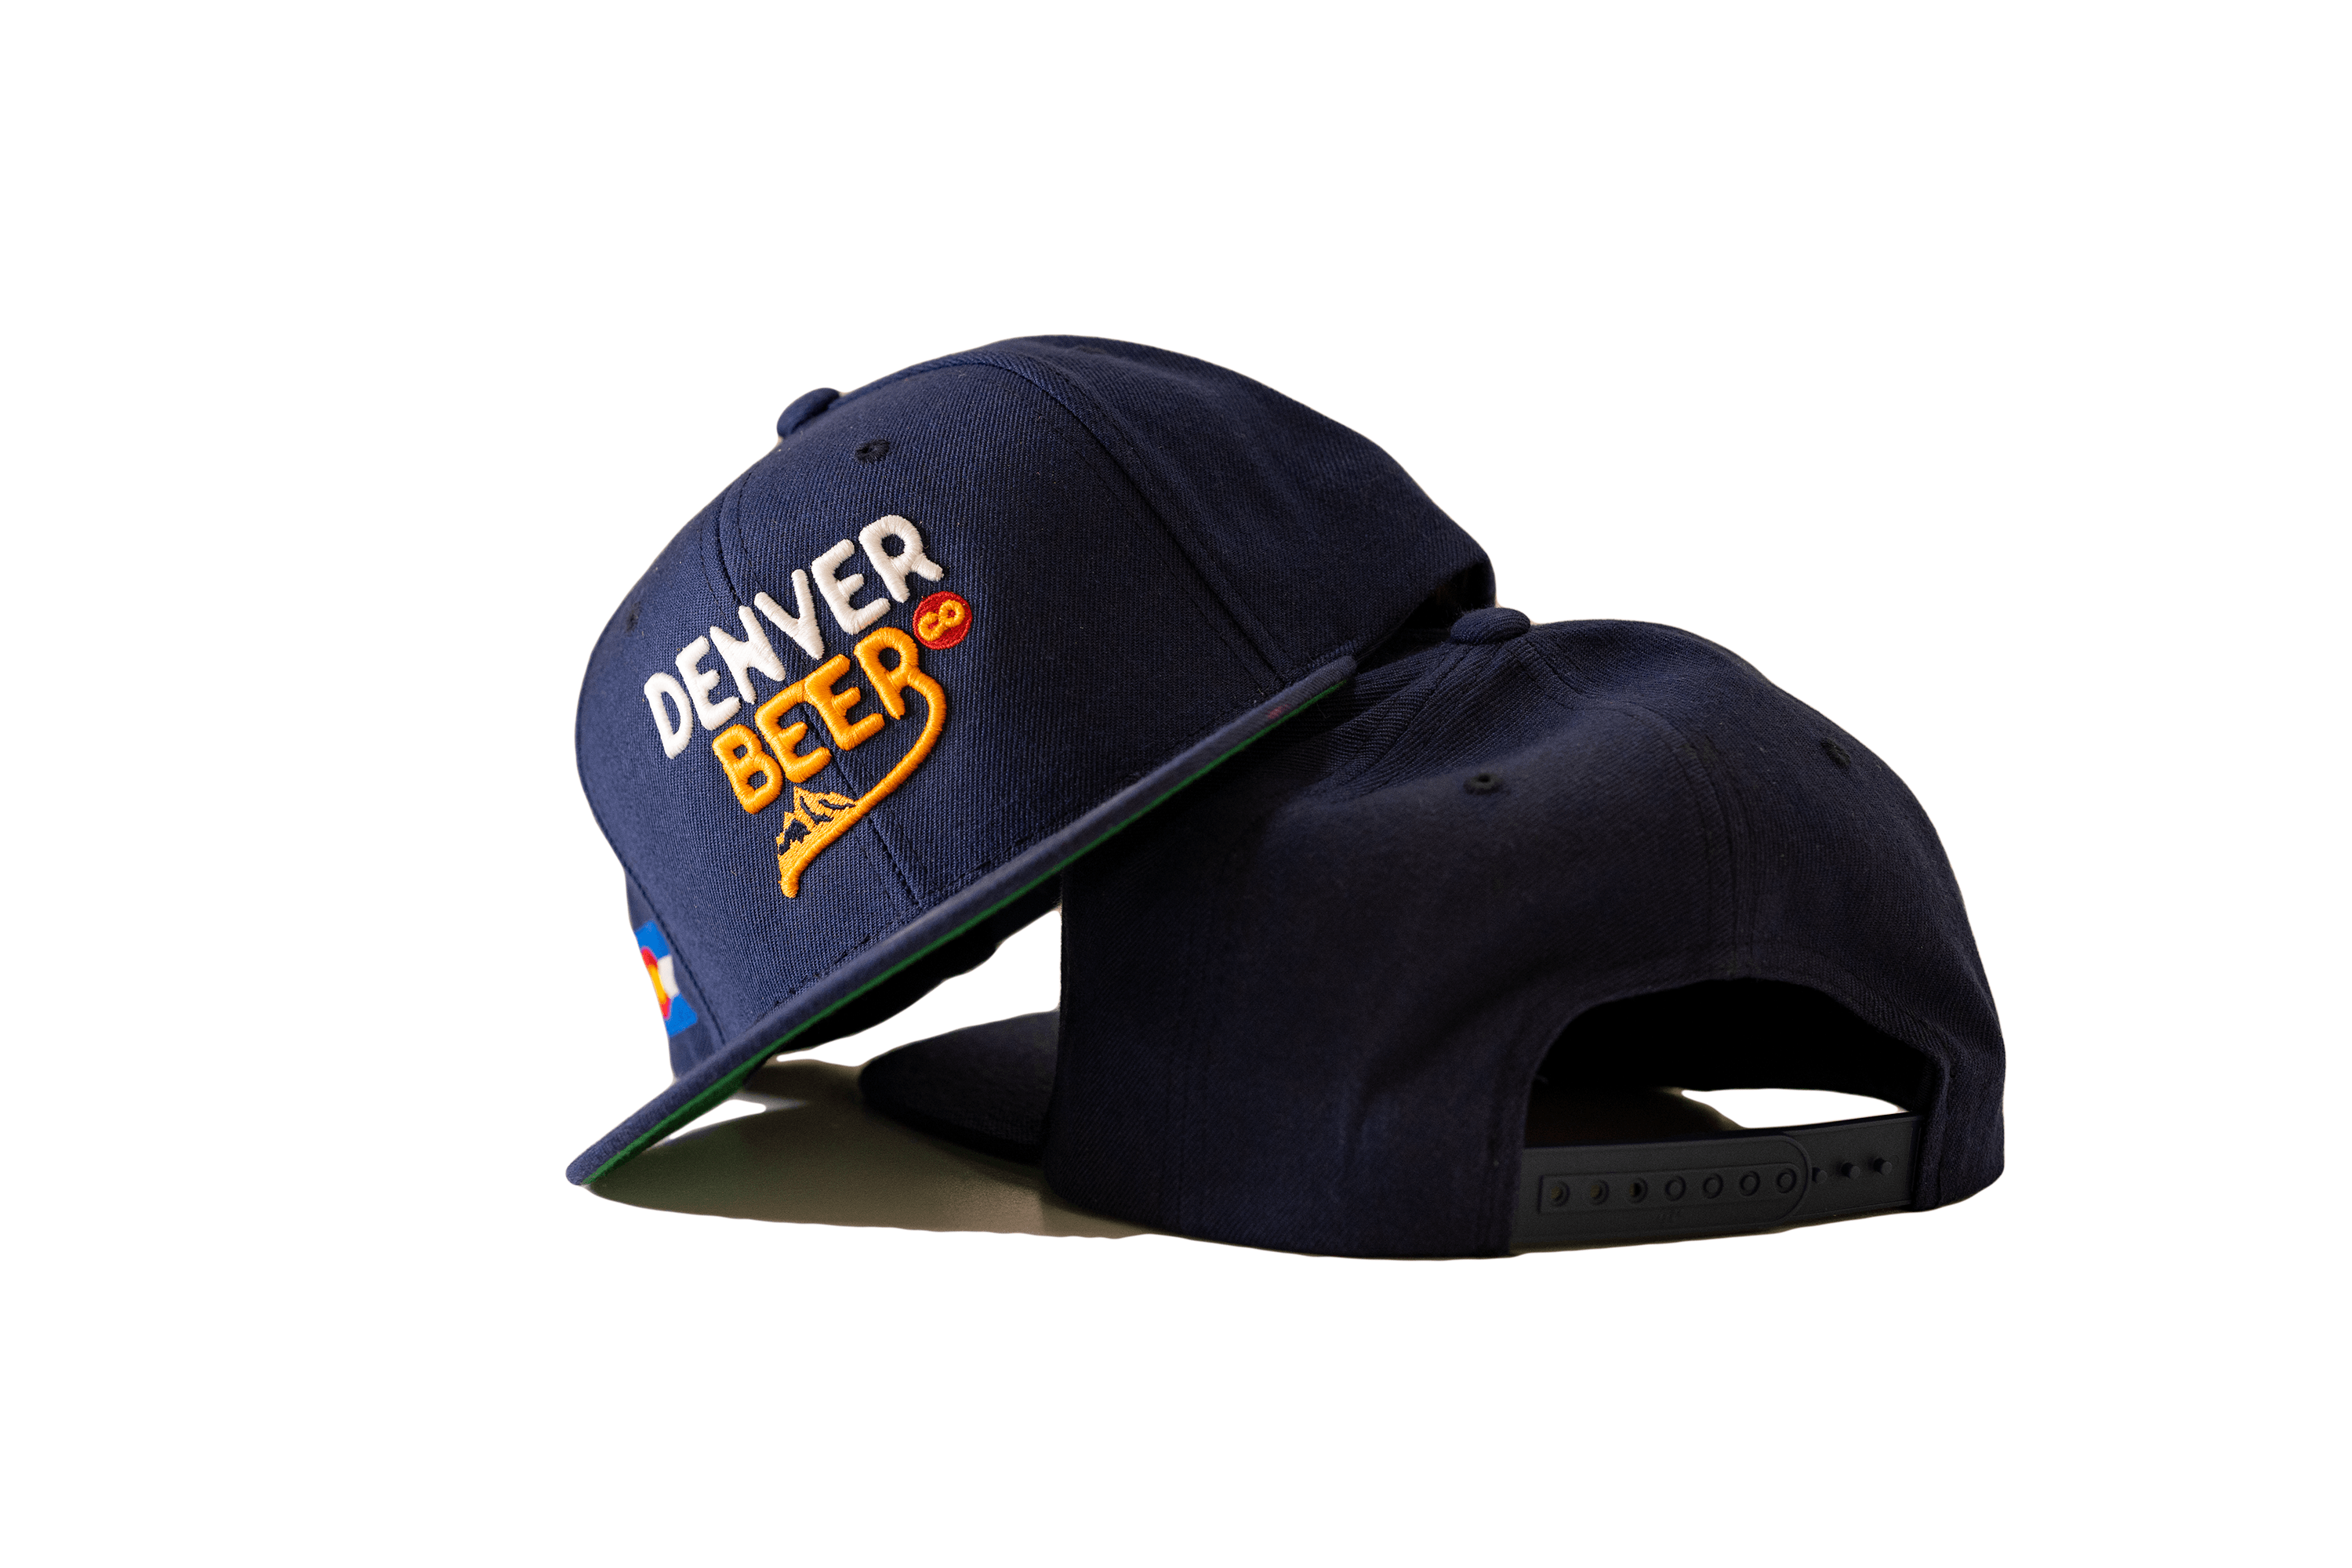 Denver Beer Co Flat Brim Hat, Snap Back, Navy Twill, with Raised Text Embroidery_MAIN